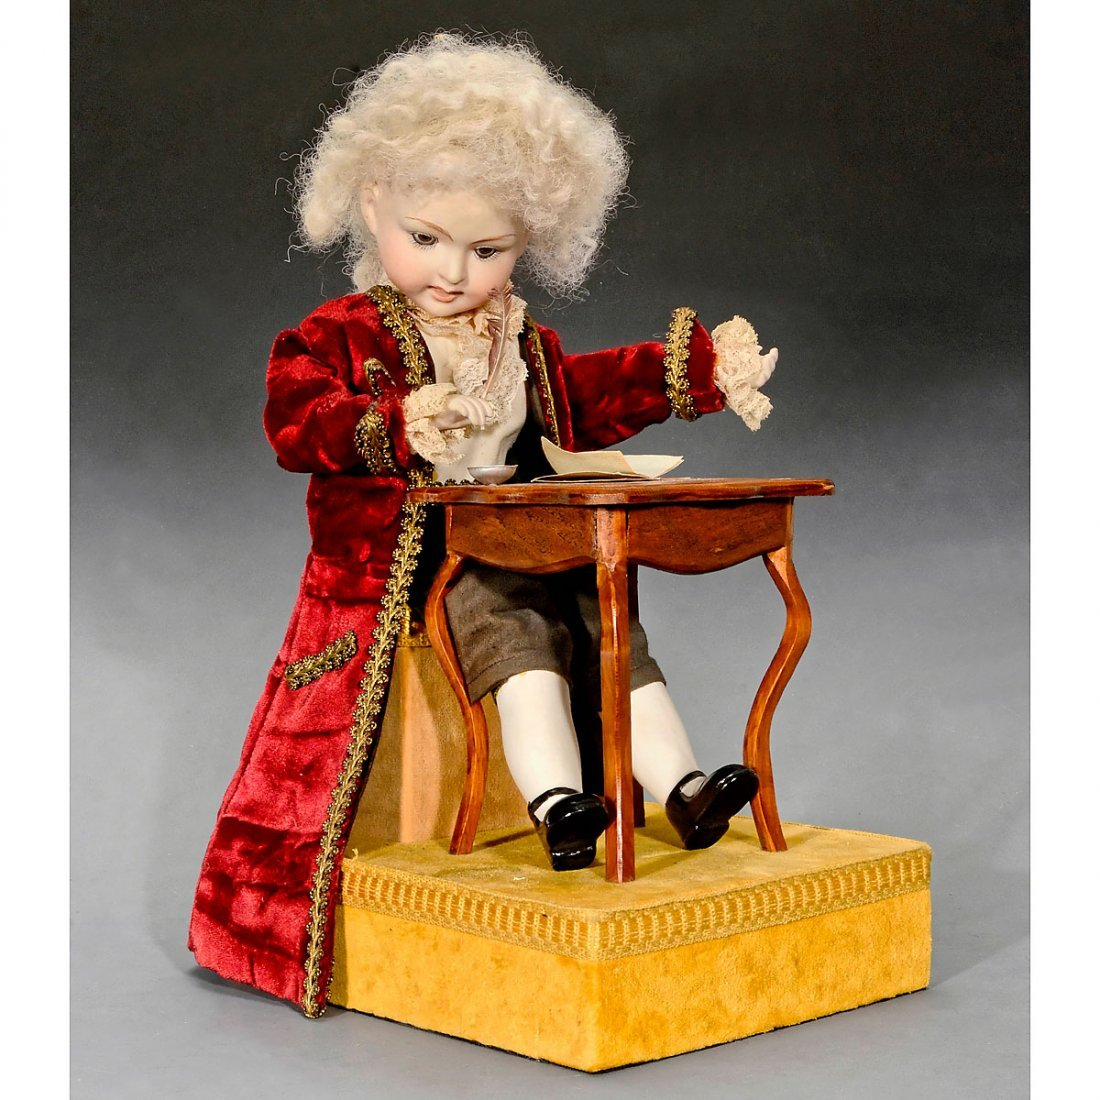 Le Petit Marquis Contemporary Musical Automaton by